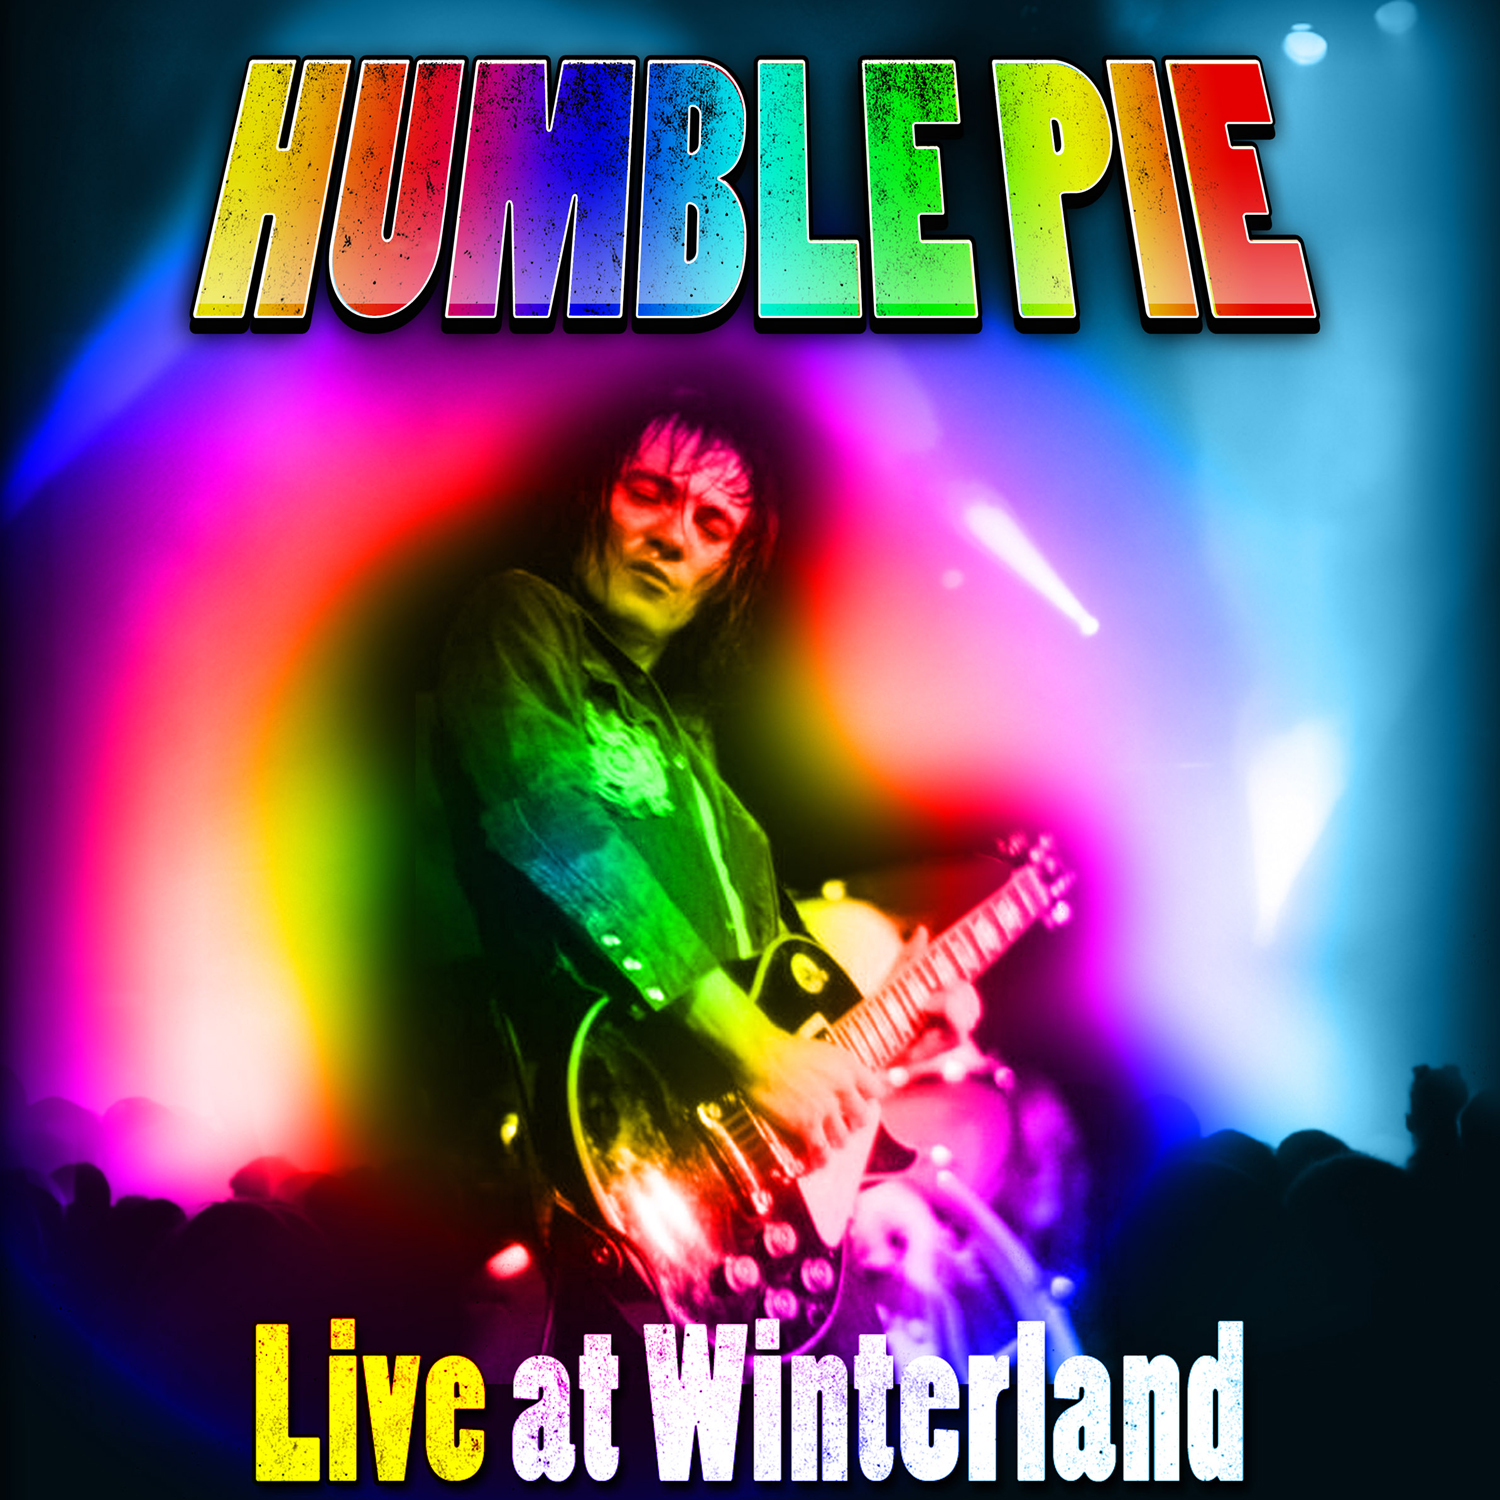 Humble Pie Live At Winterland Lp Cleopatra Records Store